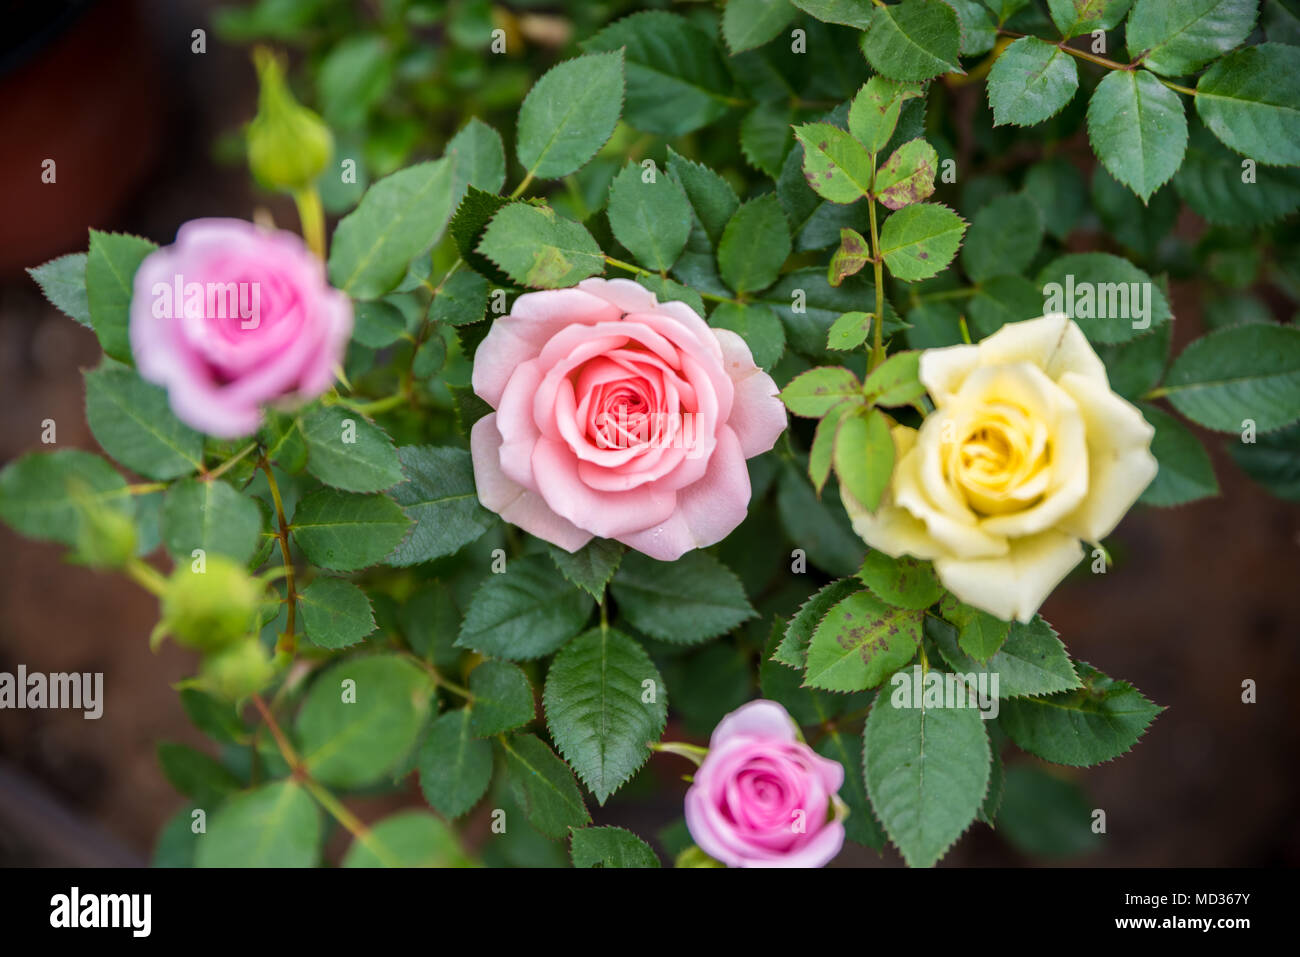 Different Color Roses Stock Photos & Different Color Roses Stock ...